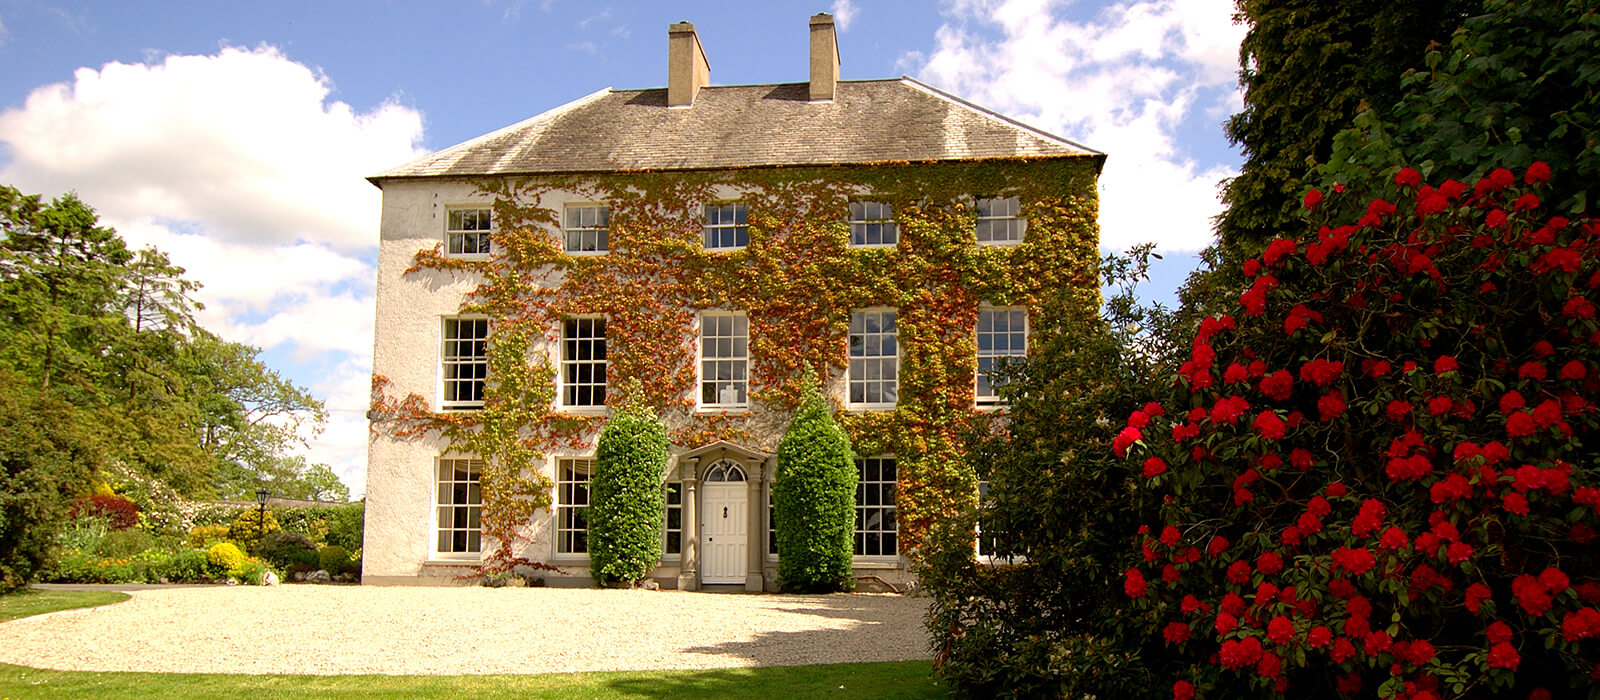 Newforge House Luxury Country House Hotels Armagh